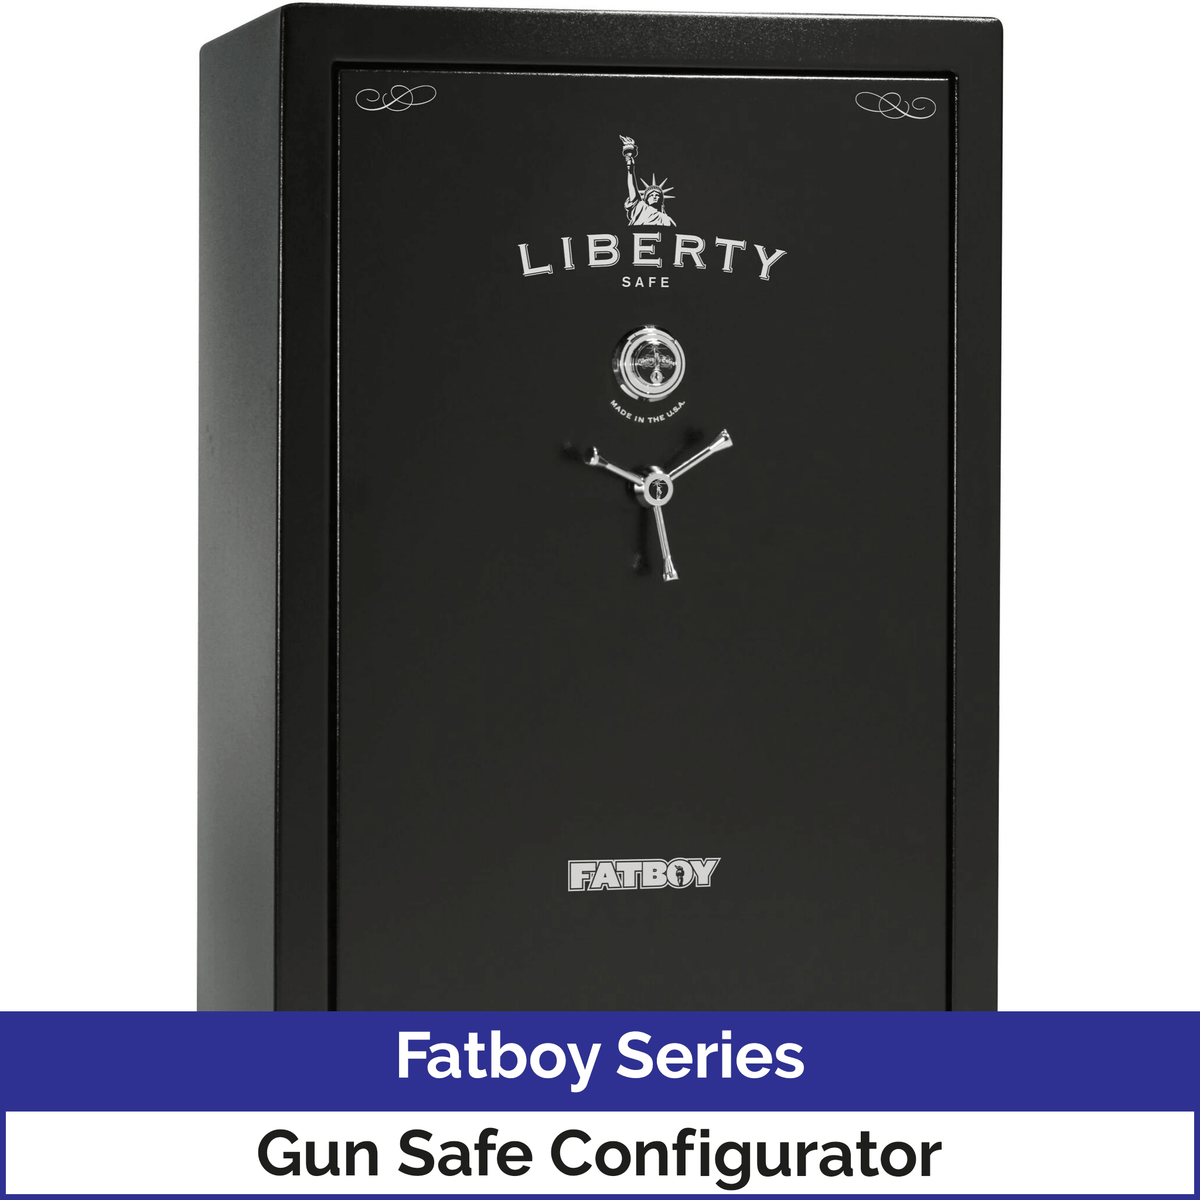 Liberty Fatboy Series Gun Safe Configurator Level 4 Security 90 Minute Fire Protection